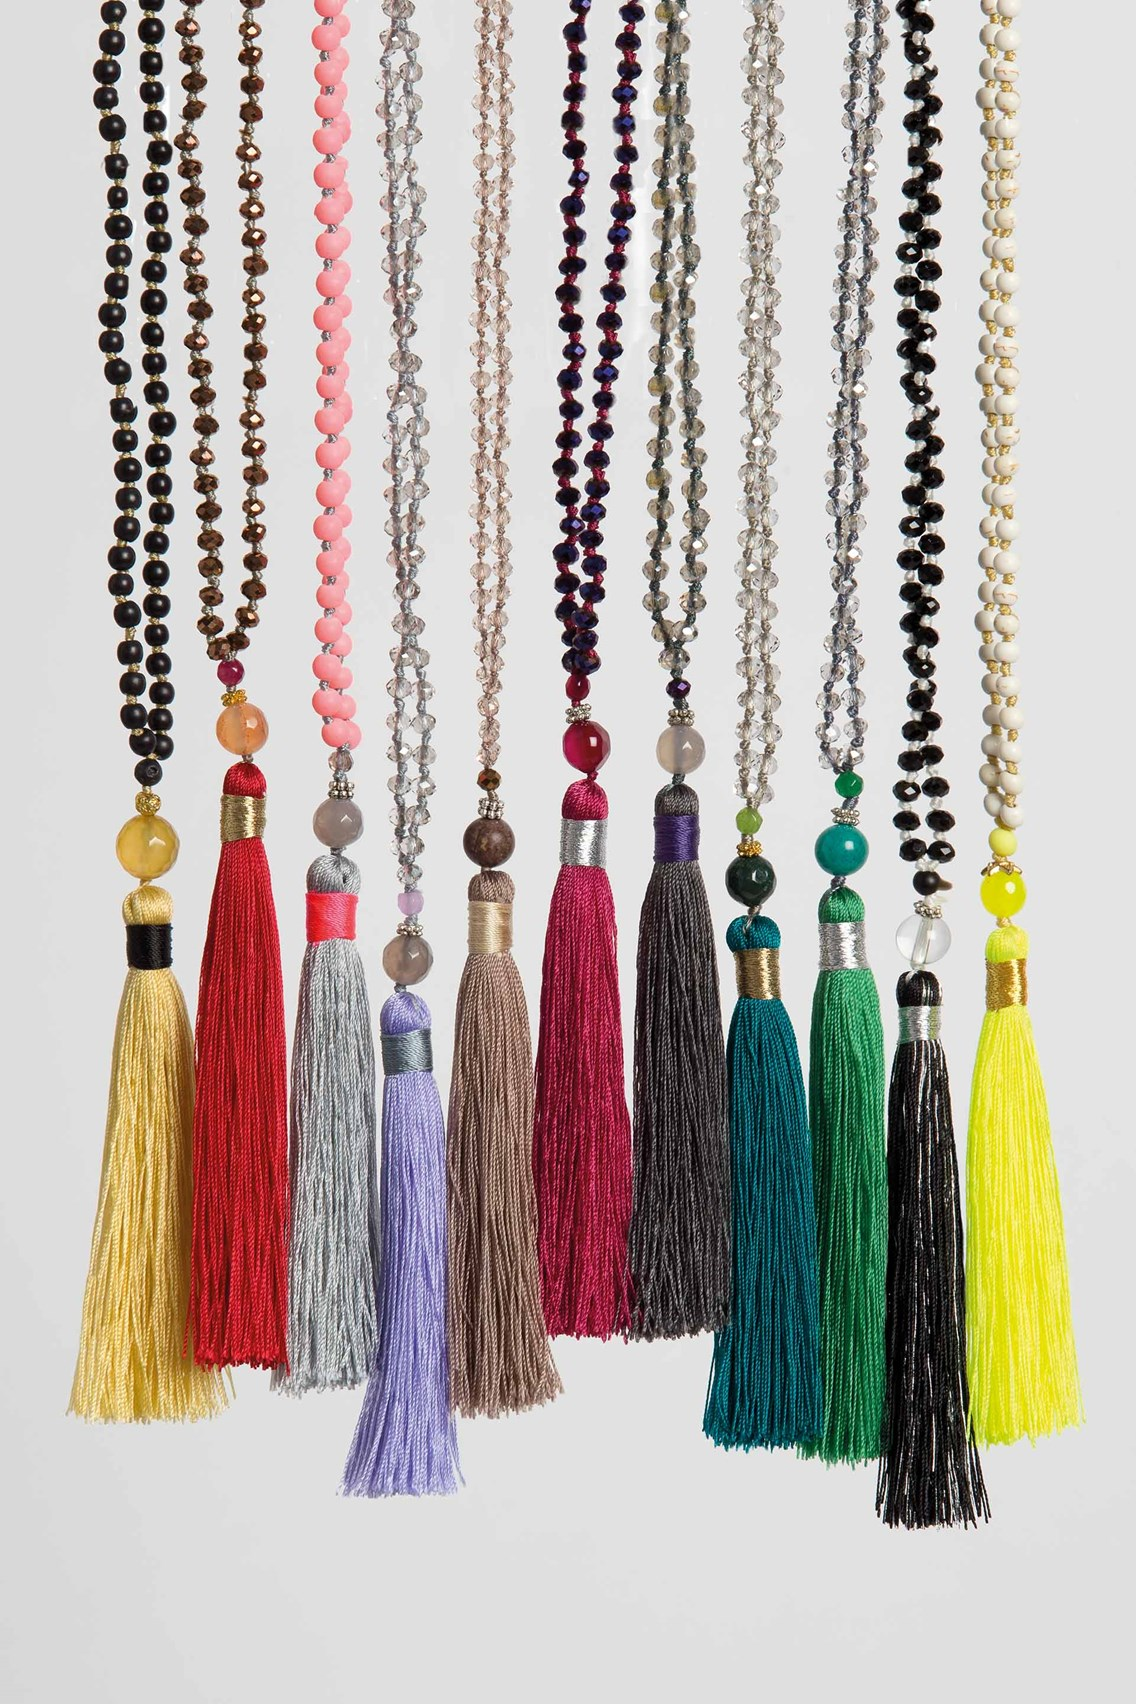 thy salt product done shop coral will necklace riot be tassel pink